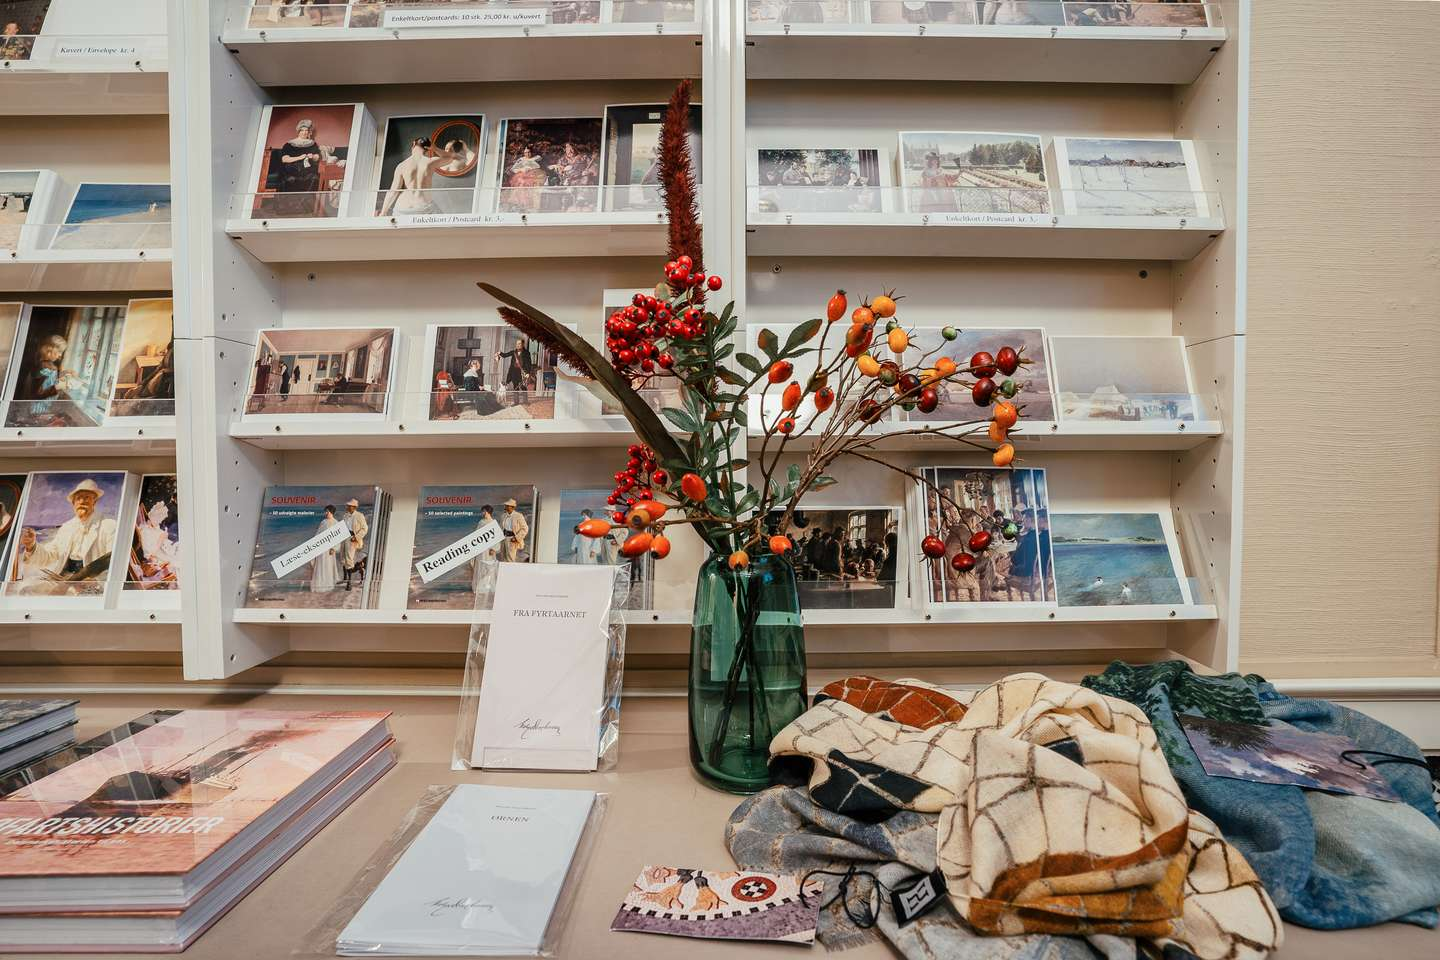 The museum gift shop has a great variety of books, posters, postcards and other stuff